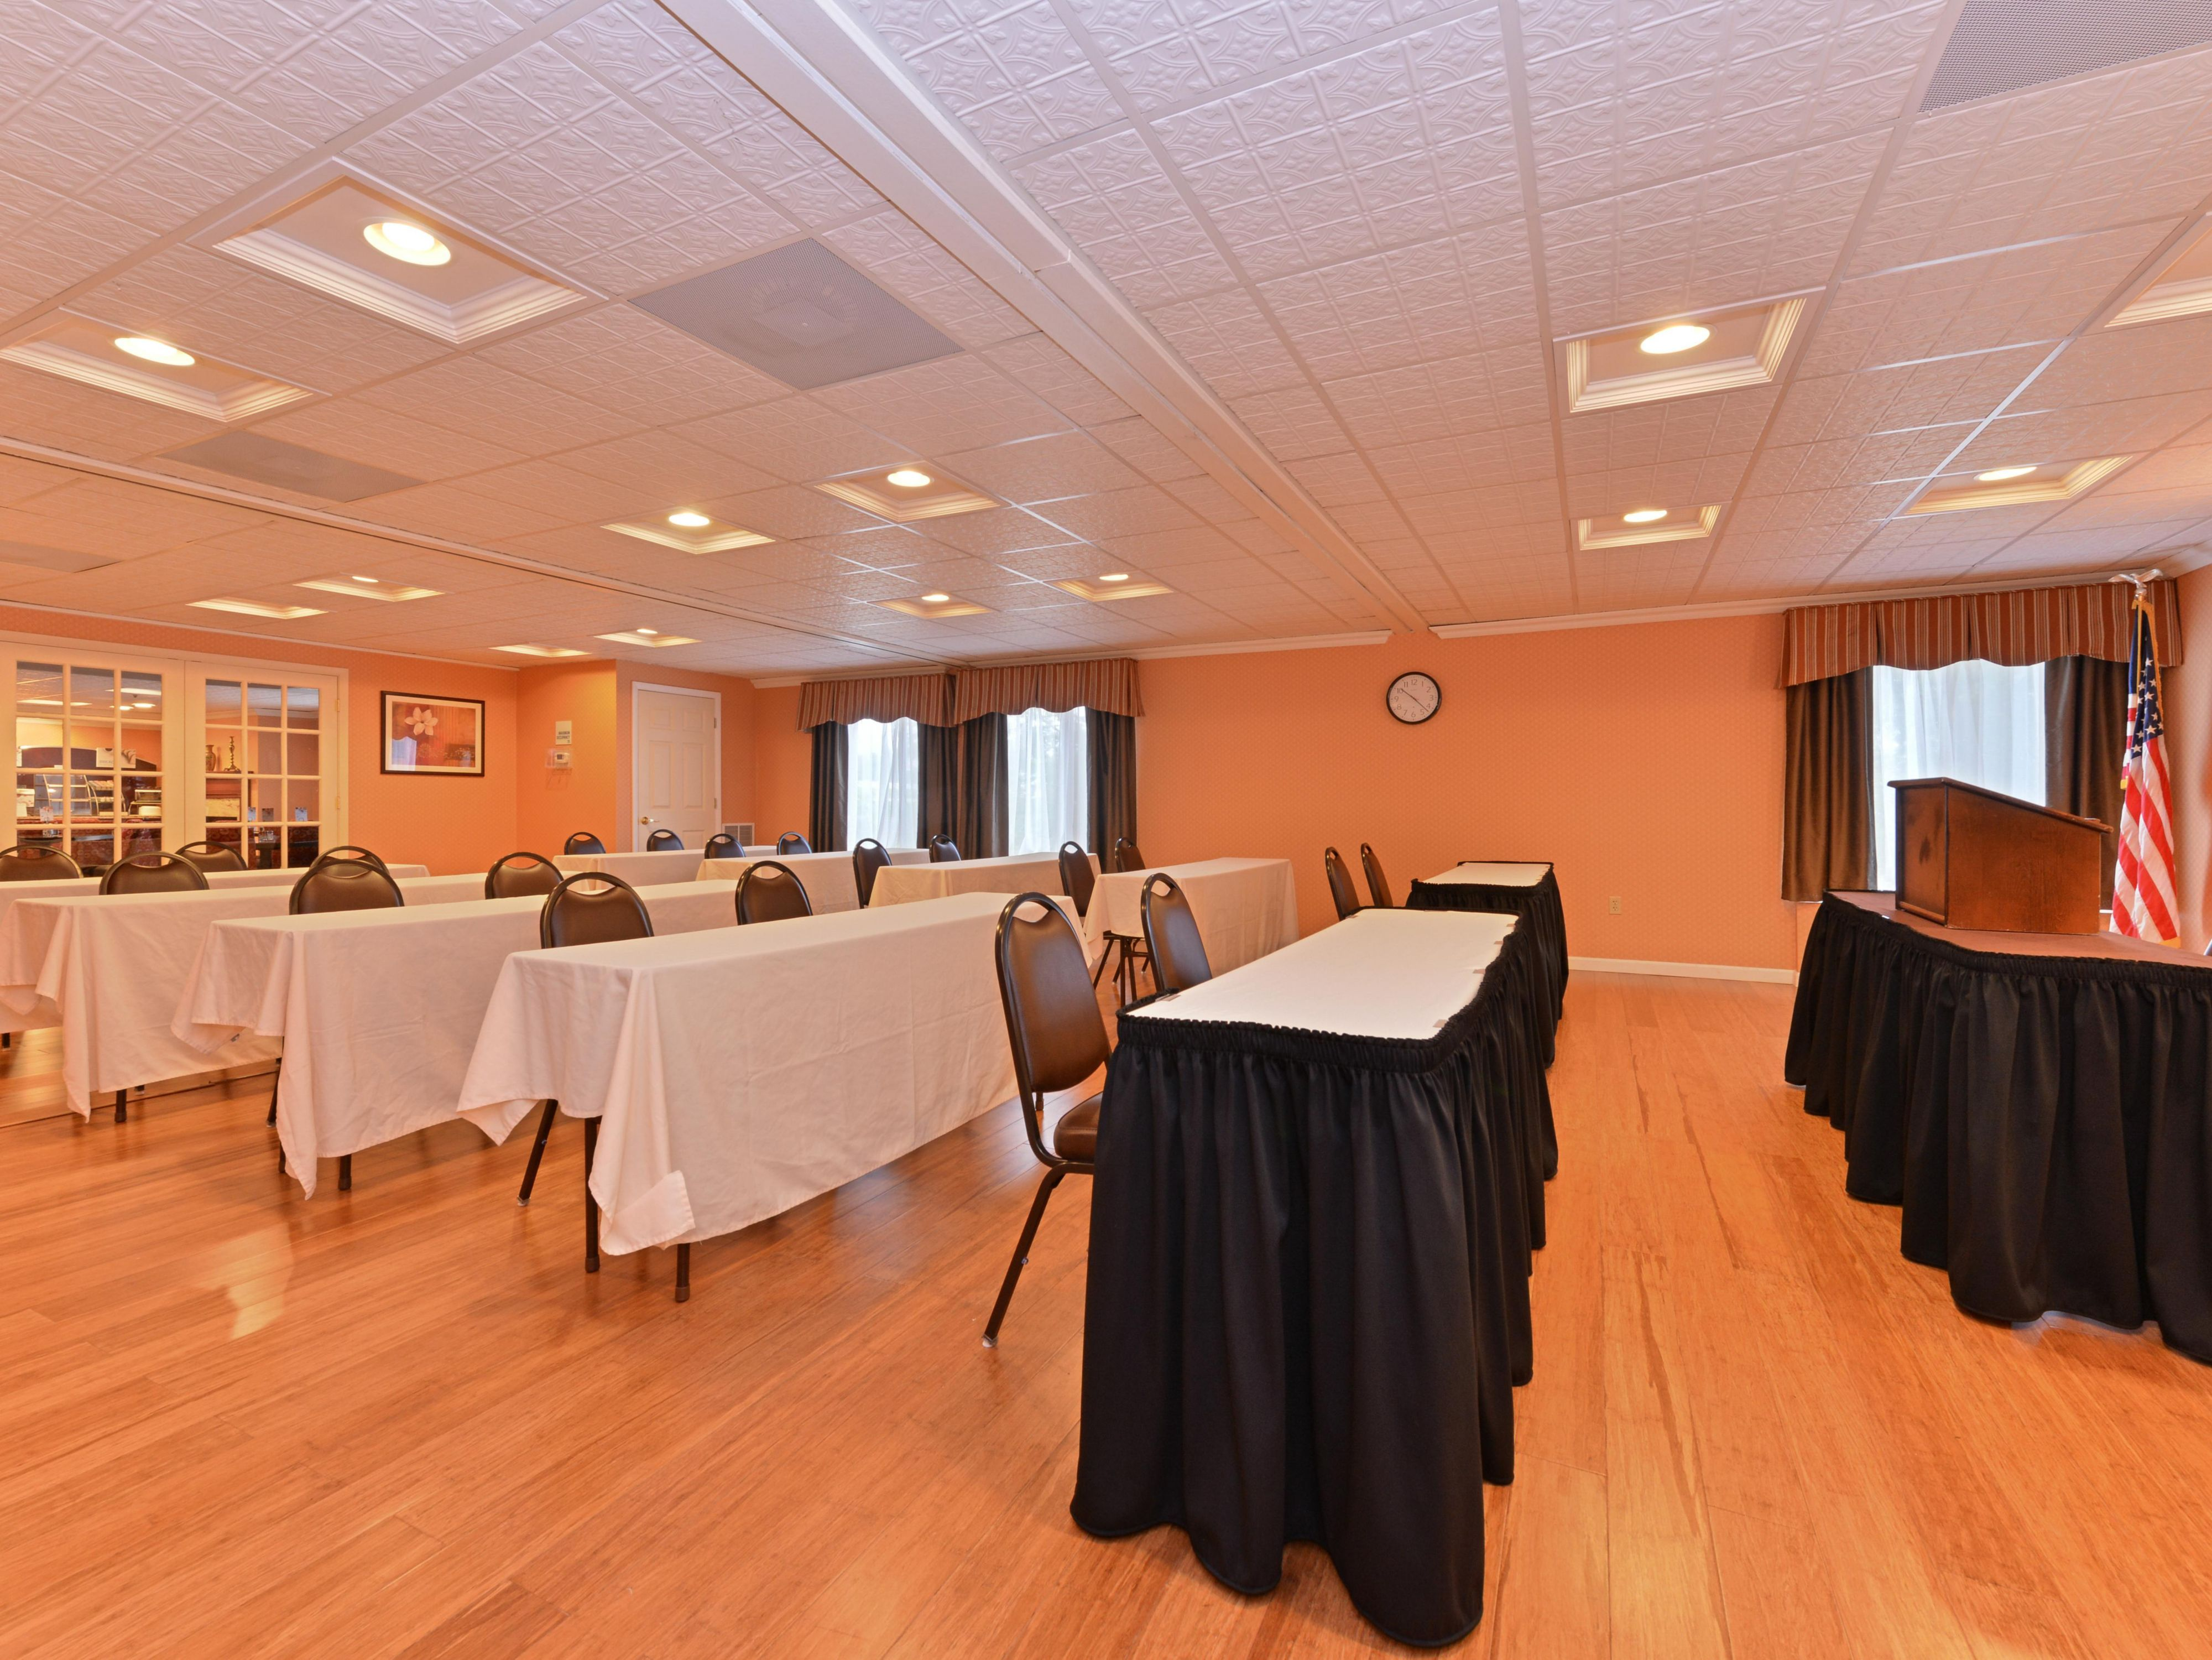 Well lit meeting space available for business meetings